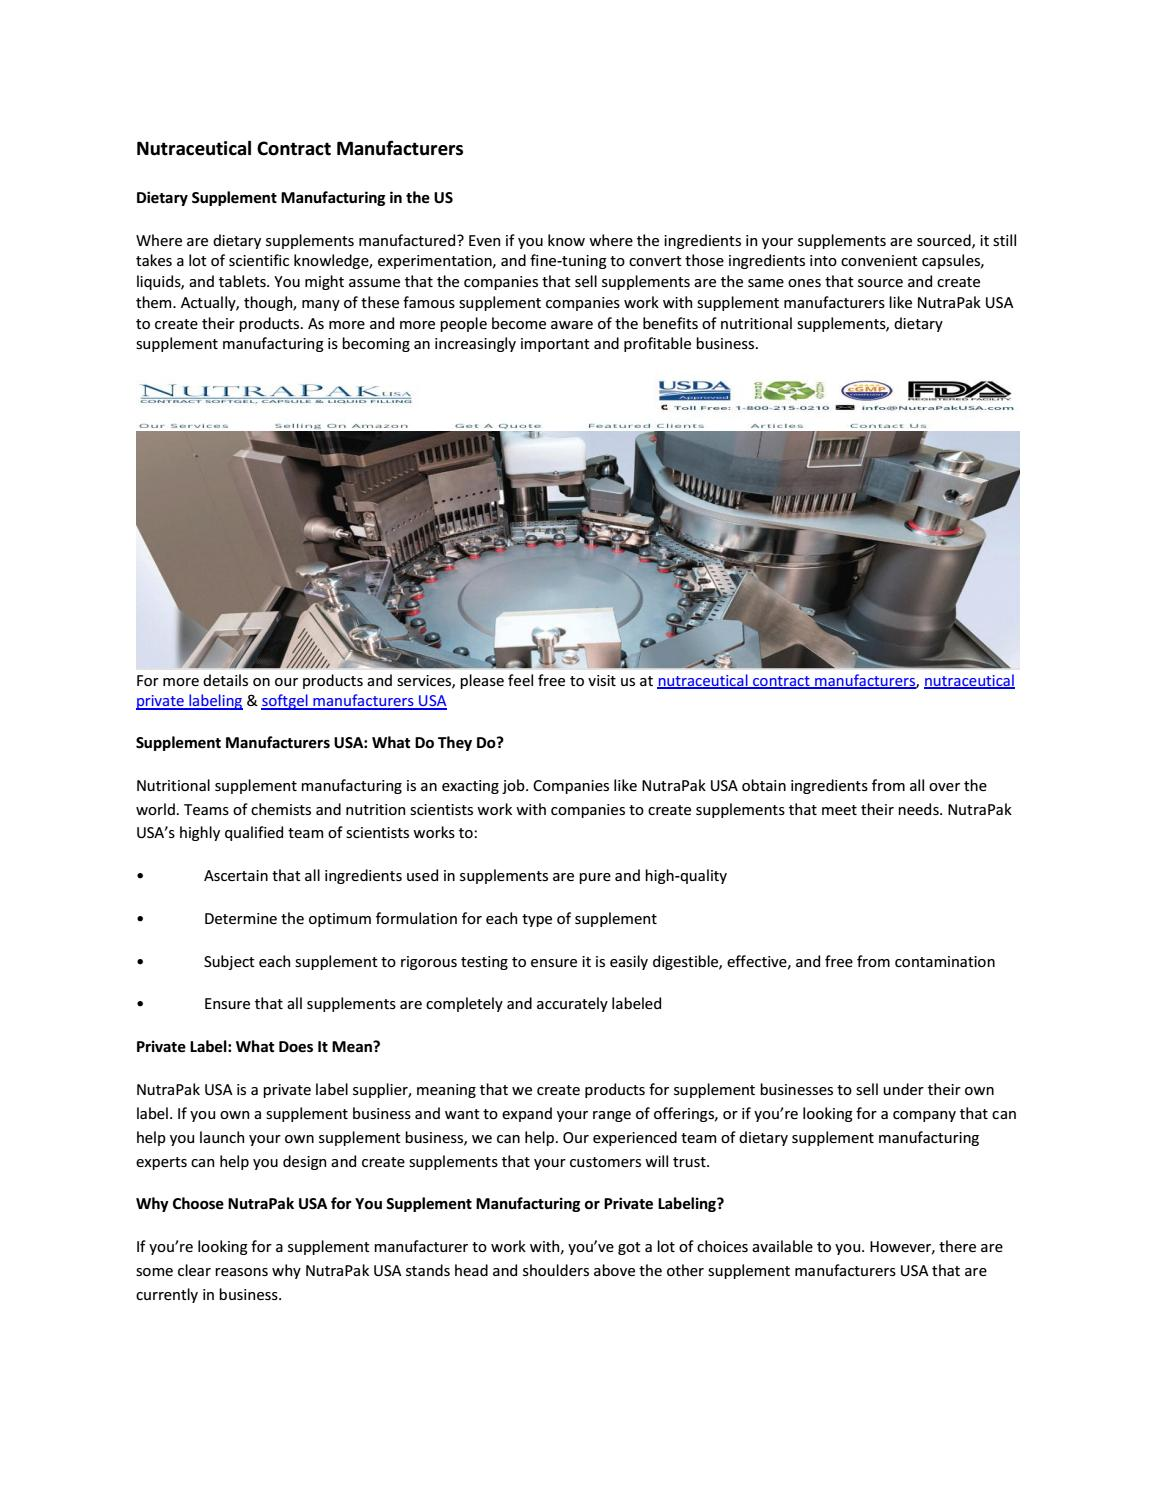 Nutraceutical contract manufacturers by nutrapakusa - issuu